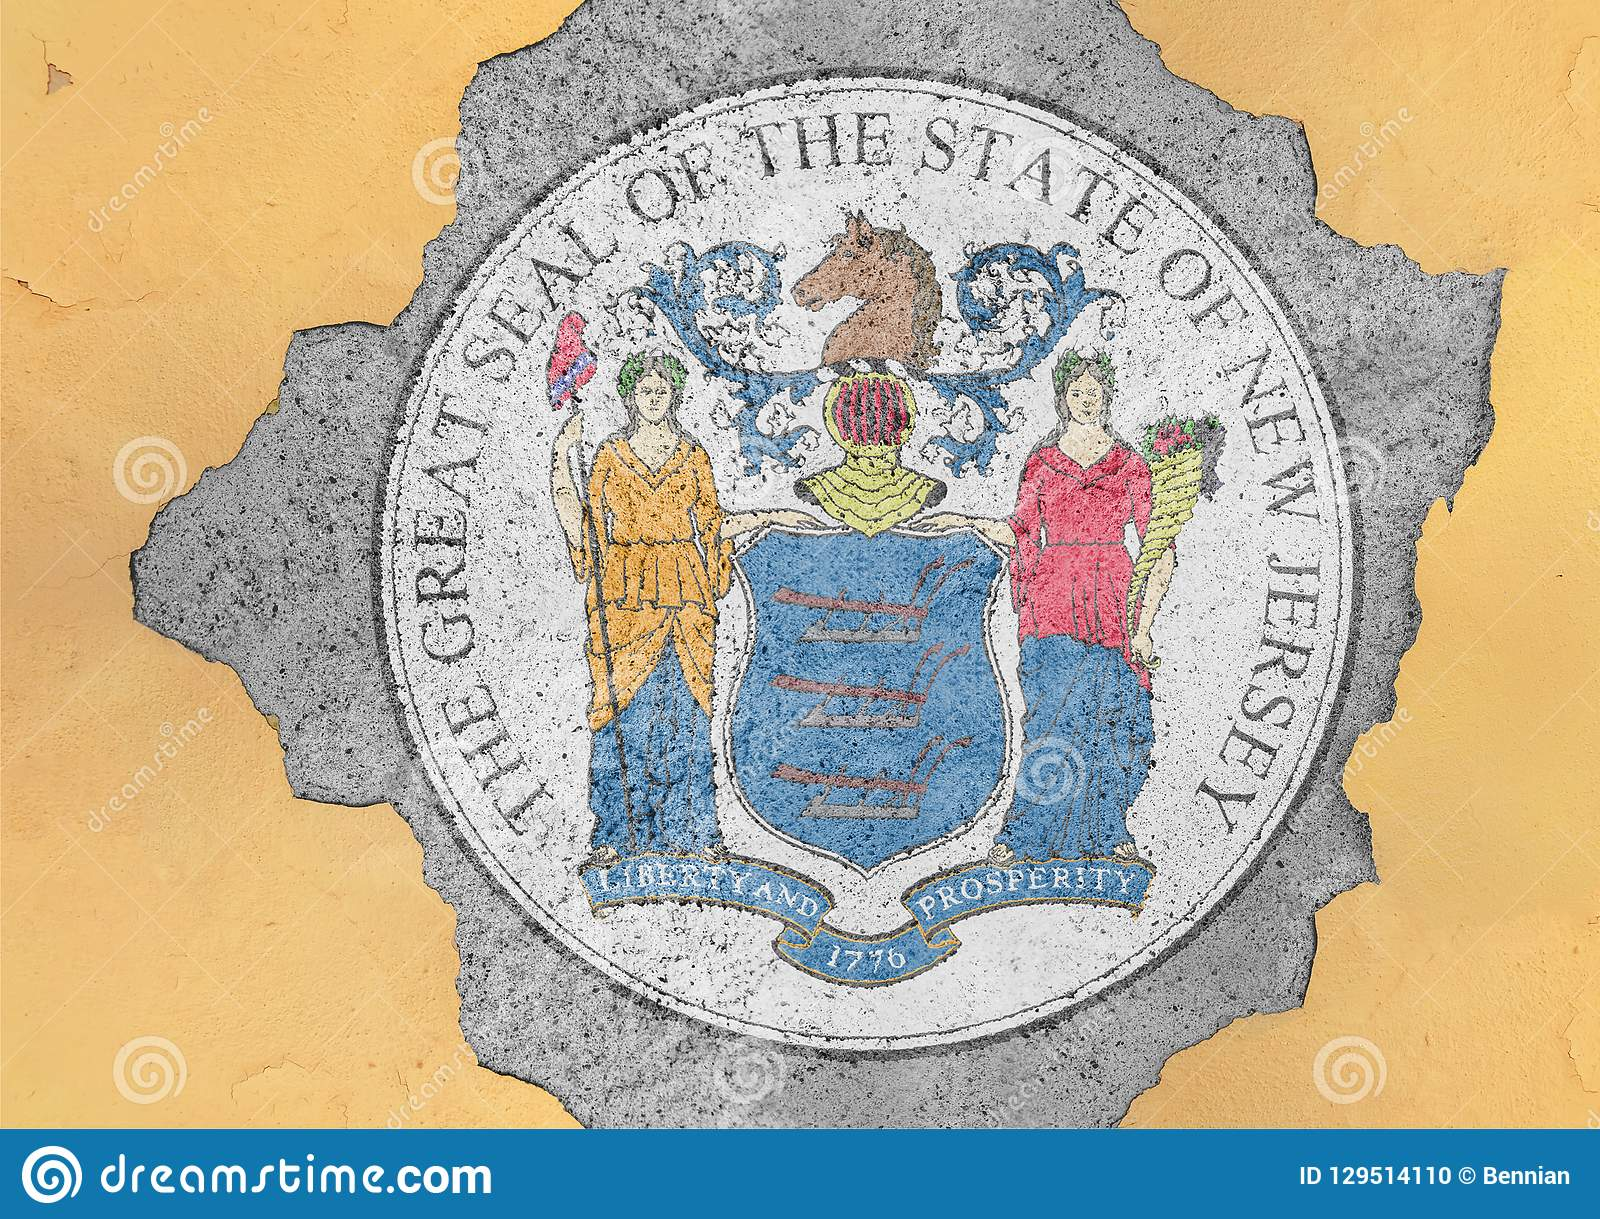 US state New Jersey flag seal in big concrete cracked hole